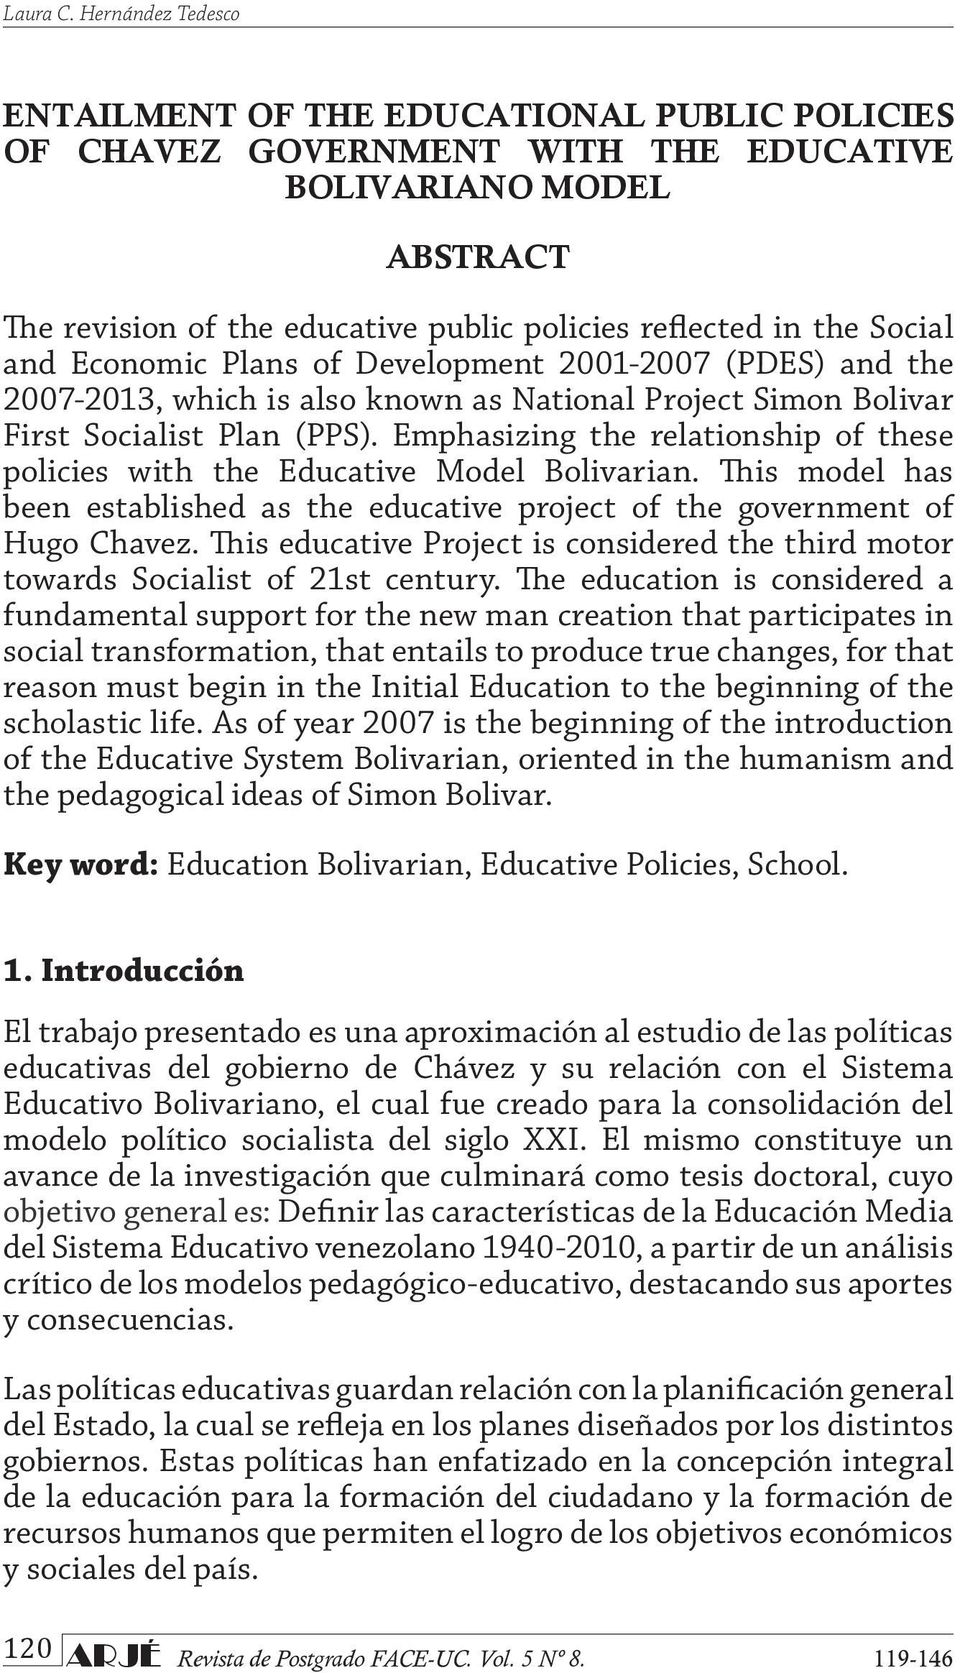 Social and Economic Plans of Development 2001-2007 (PDES) and the 2007-2013, which is also known as National Project Simon Bolivar First Socialist Plan (PPS).